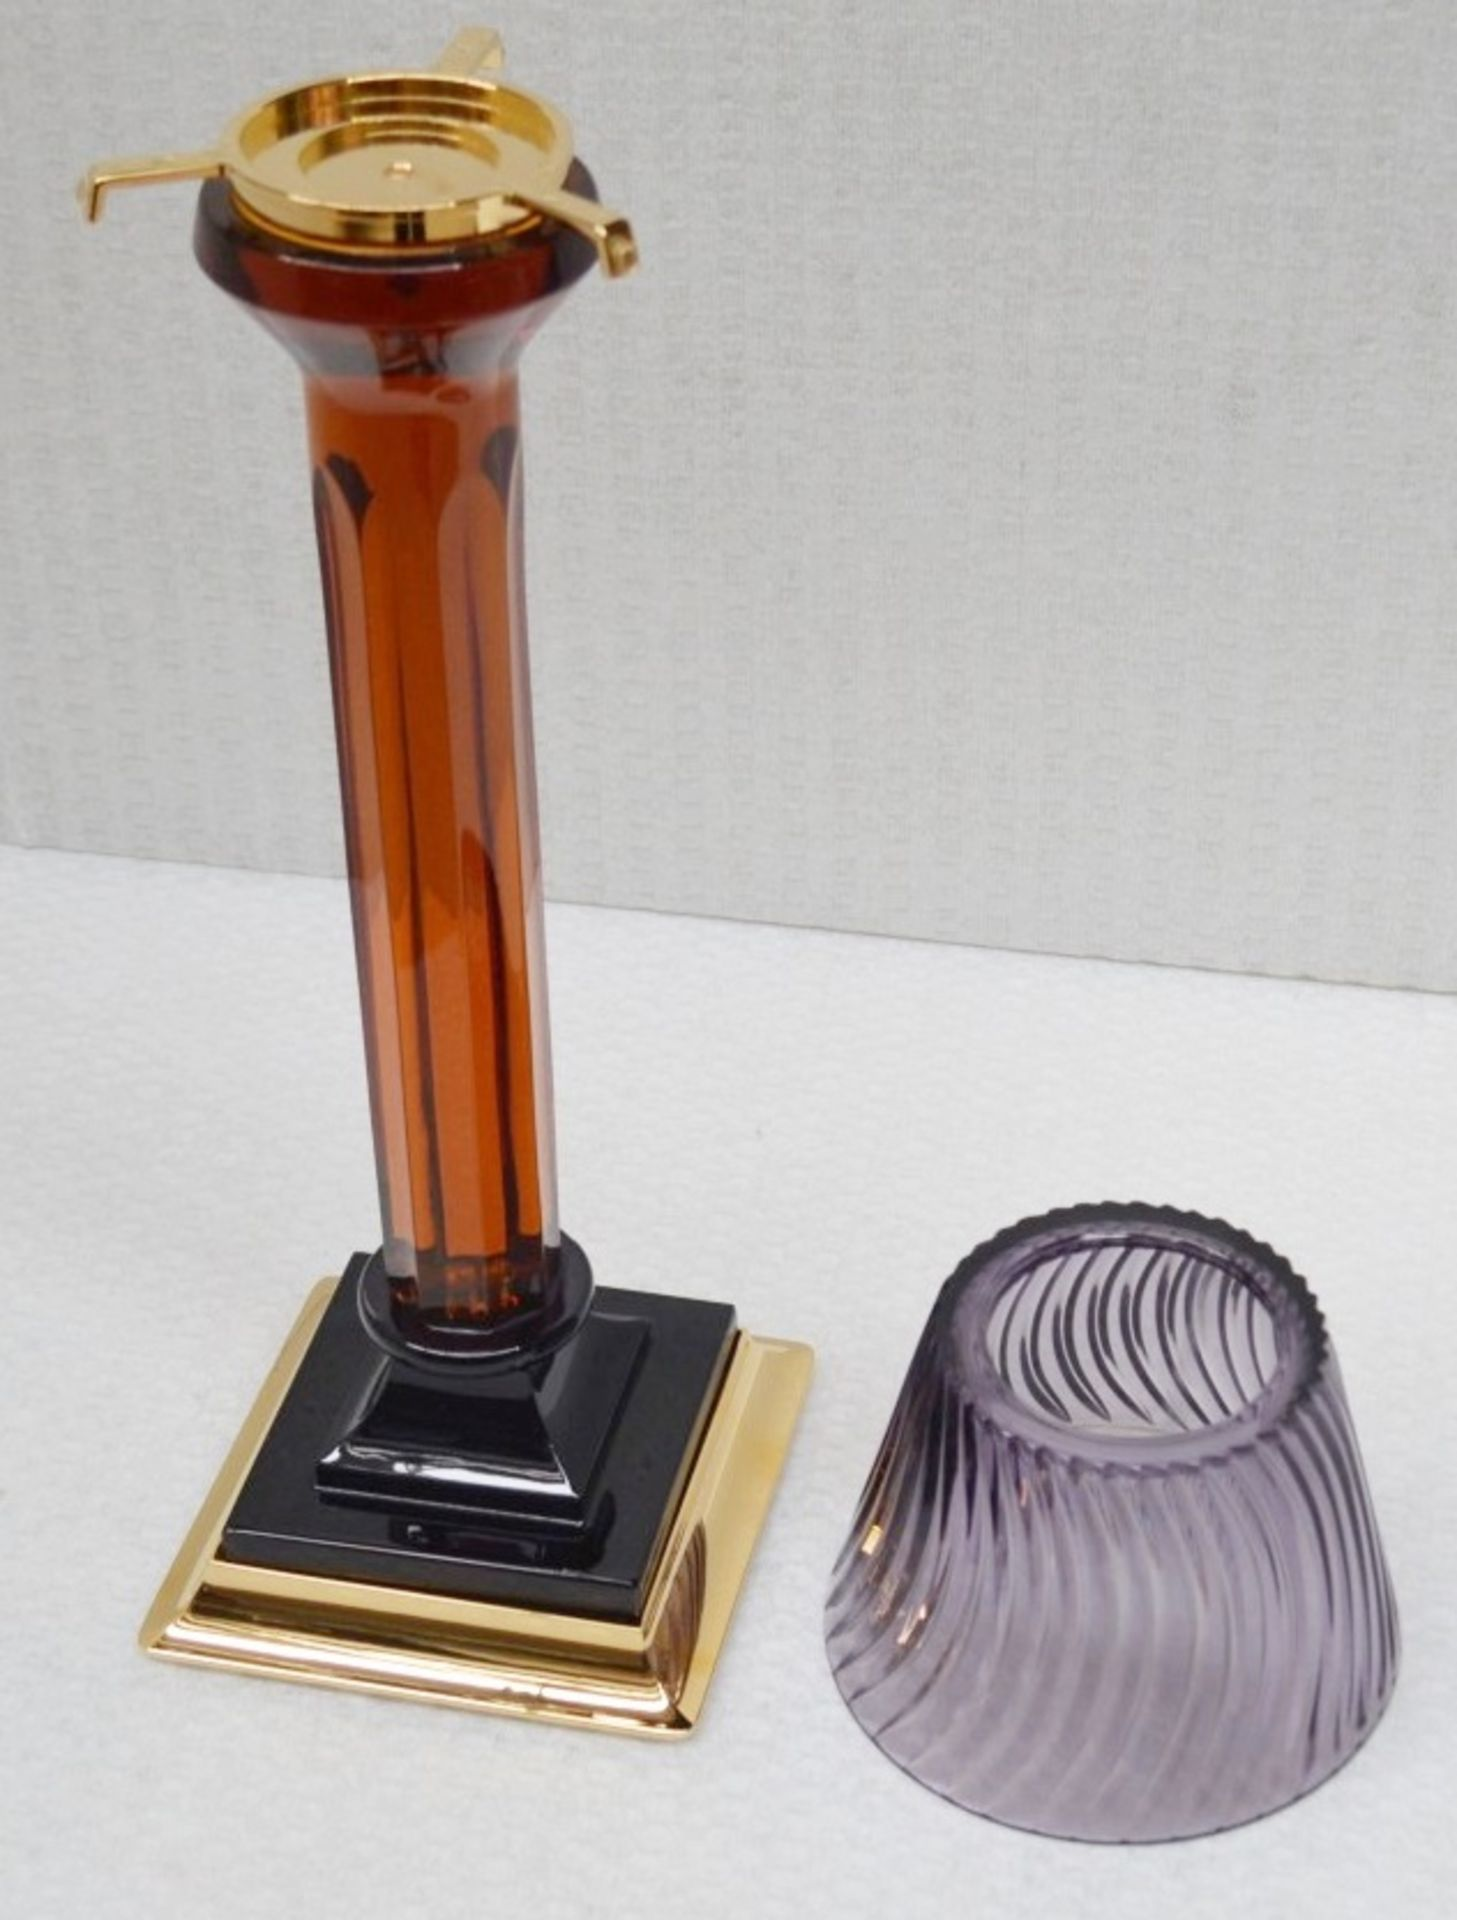 1 x BALDI 'Home Jewels' Italian Hand-crafted Artisan Candle Stick In Purple & Amber Crystal, With - Image 2 of 2